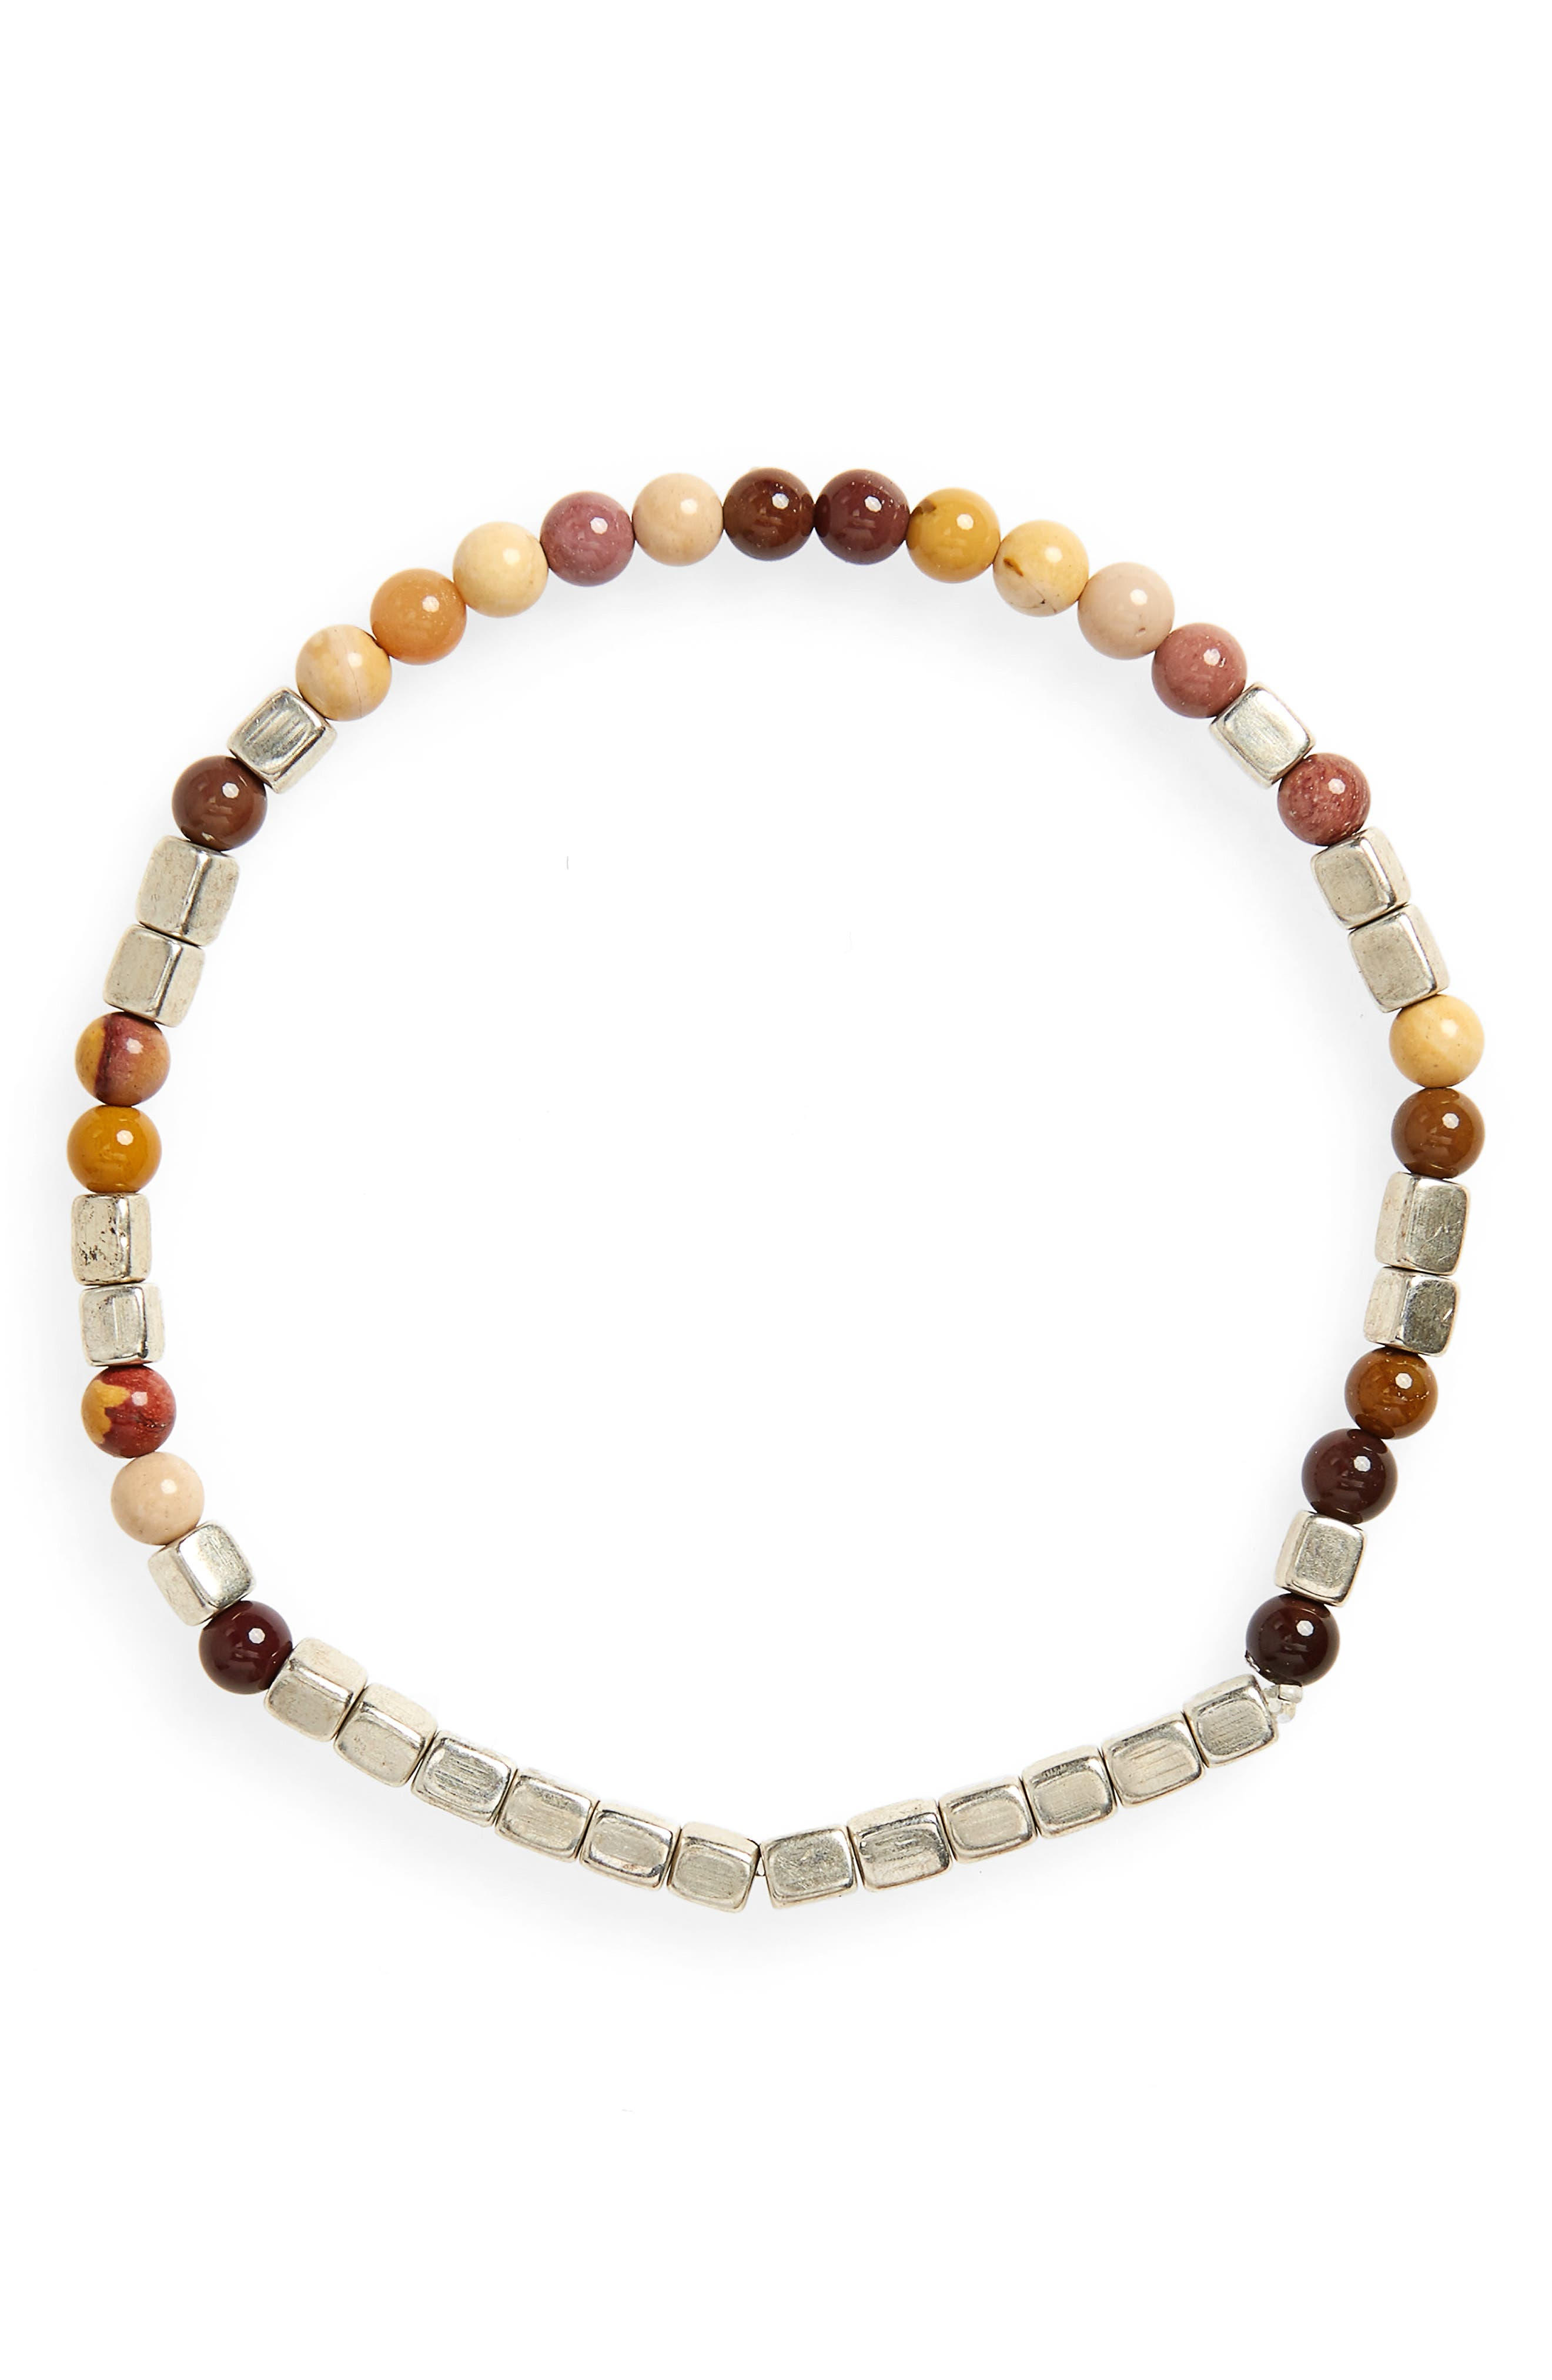 Mookaite Bead Bracelet,                         Main,                         color, SILVER/ BROWN